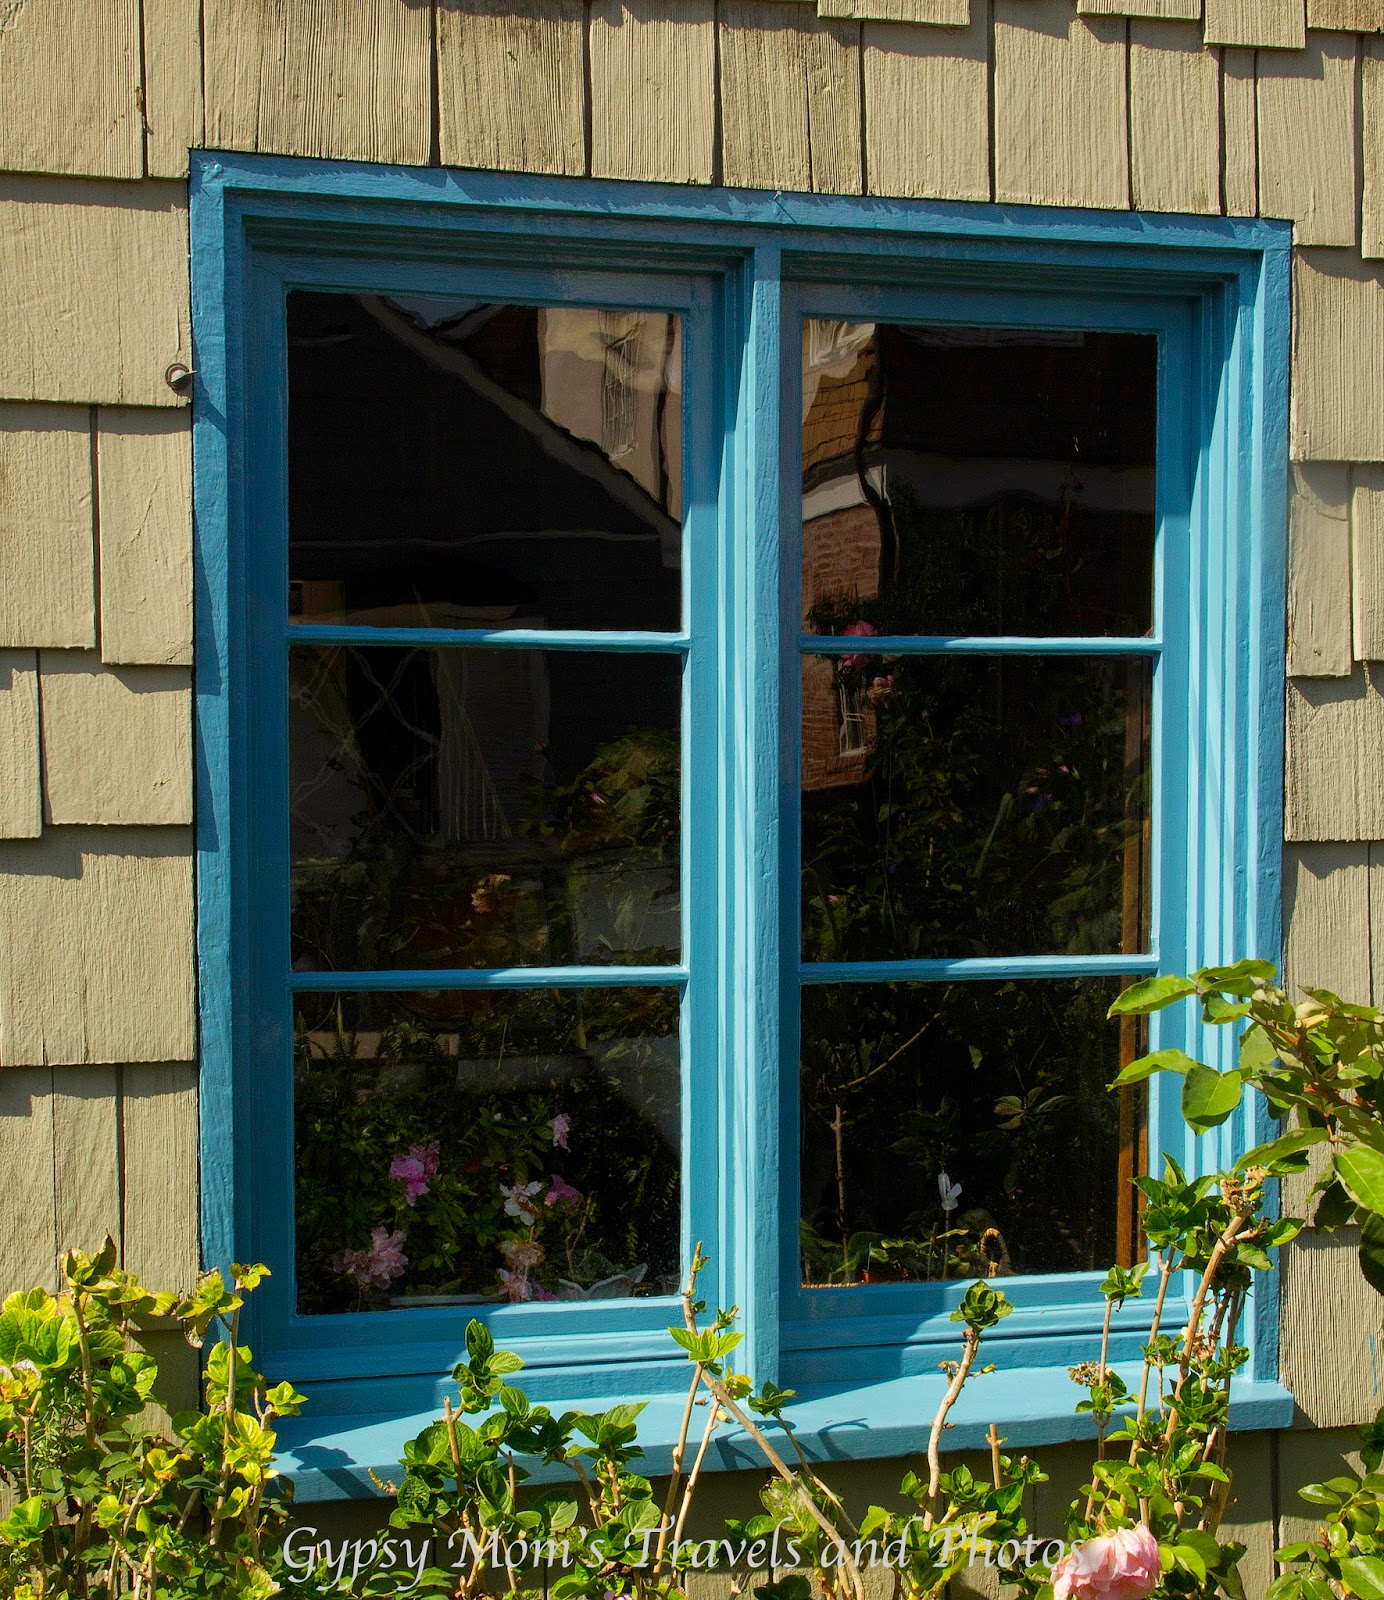 Blue Window on wood shingle house on Balboa Island